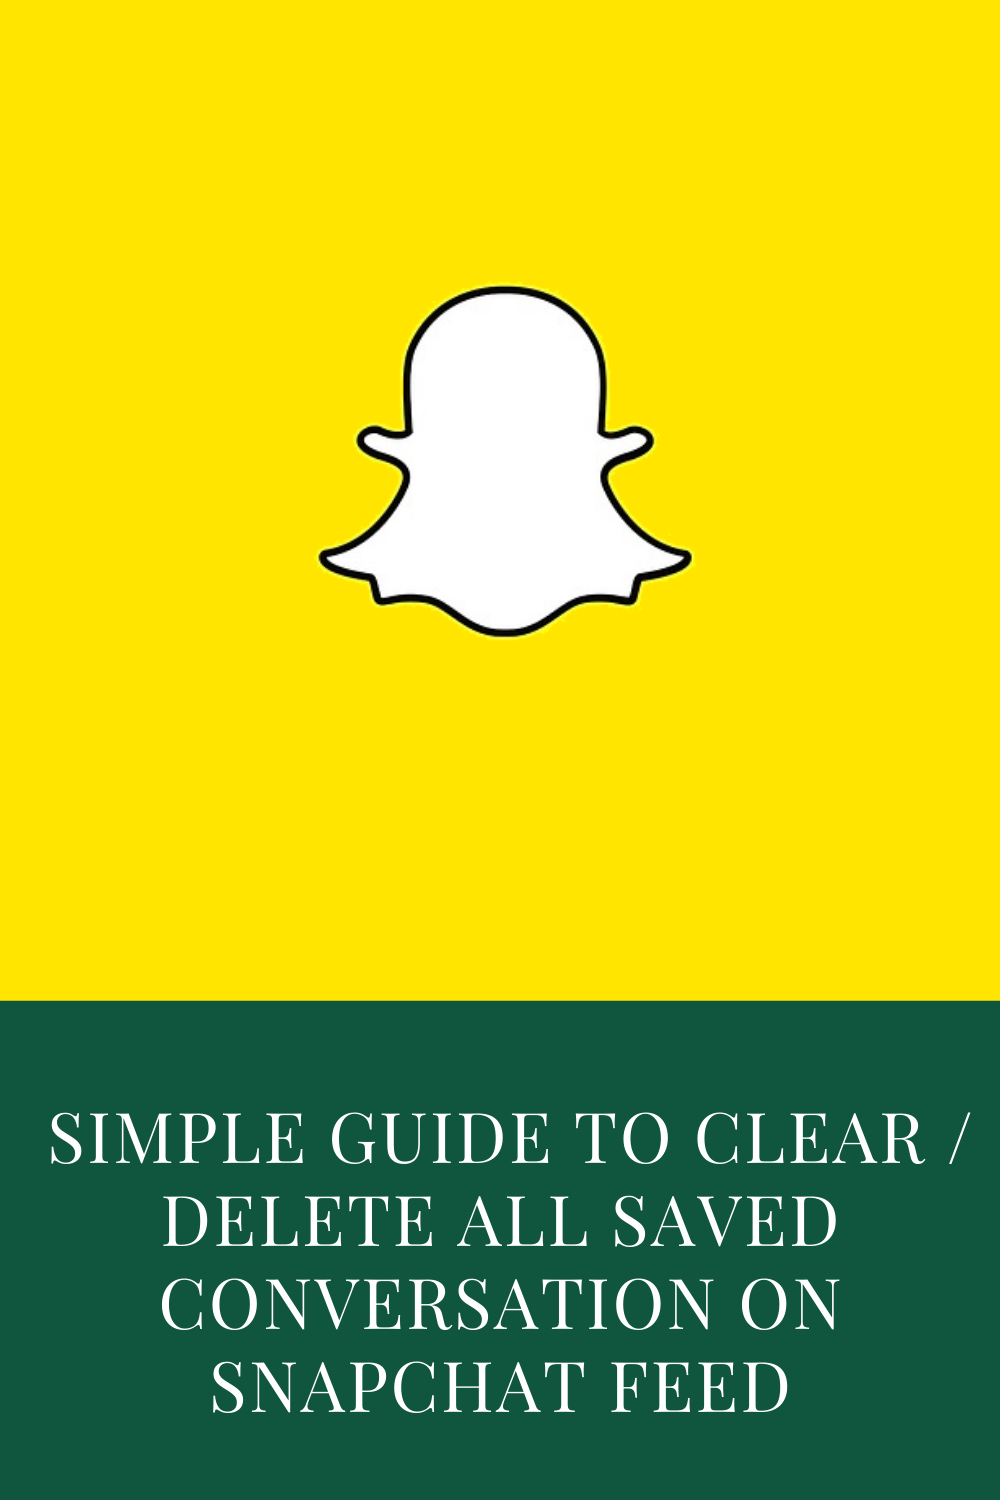 Simple Guide To Clear Delete All Saved Conversation On Snapchat Feed 2020 Conversation Snapchat Snapchat Conversation